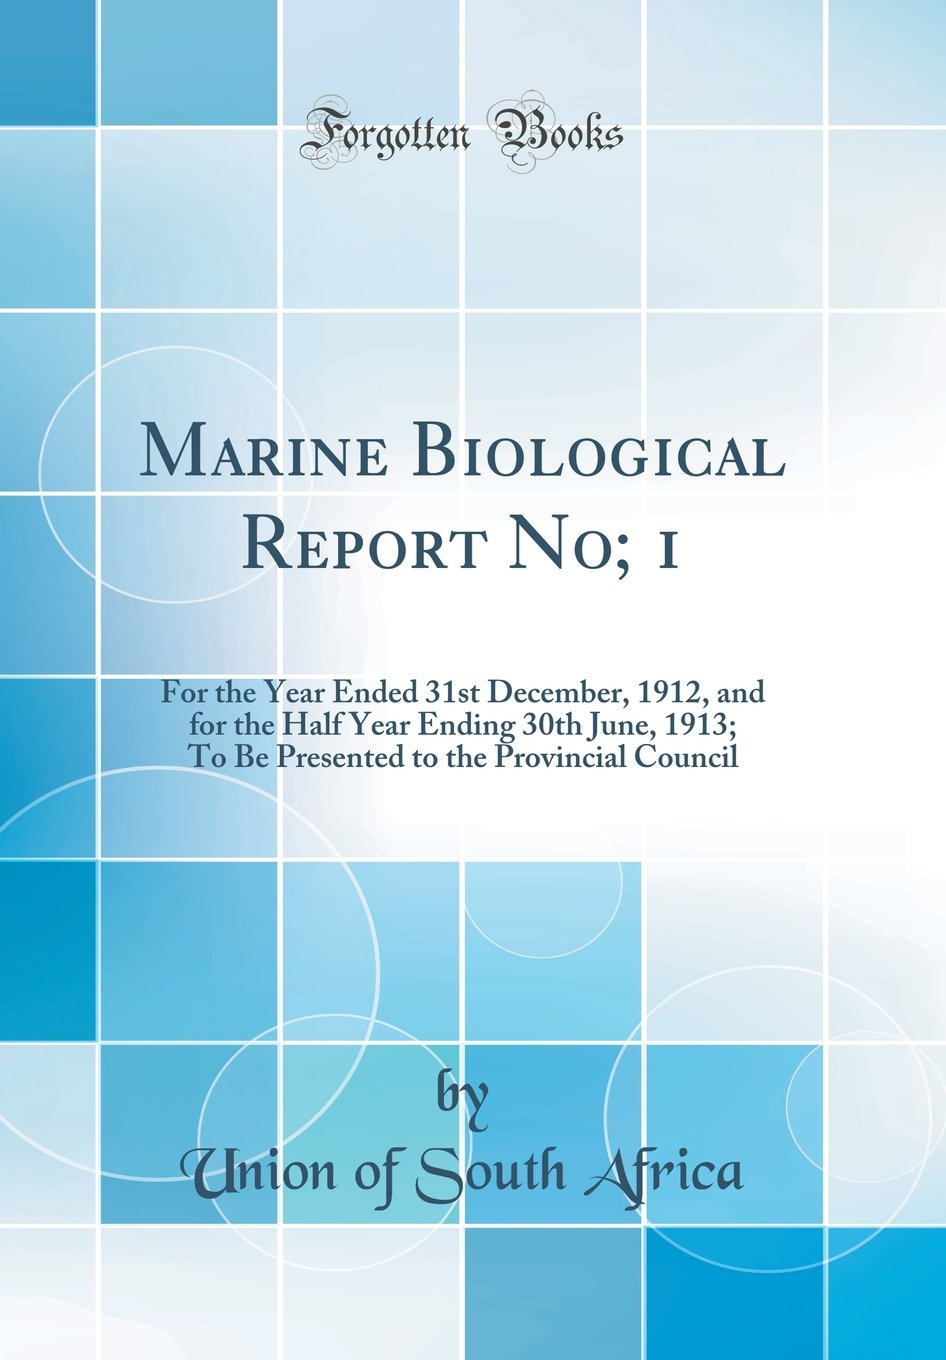 Download Marine Biological Report No; 1: For the Year Ended 31st December, 1912, and for the Half Year Ending 30th June, 1913; To Be Presented to the Provincial Council (Classic Reprint) ebook